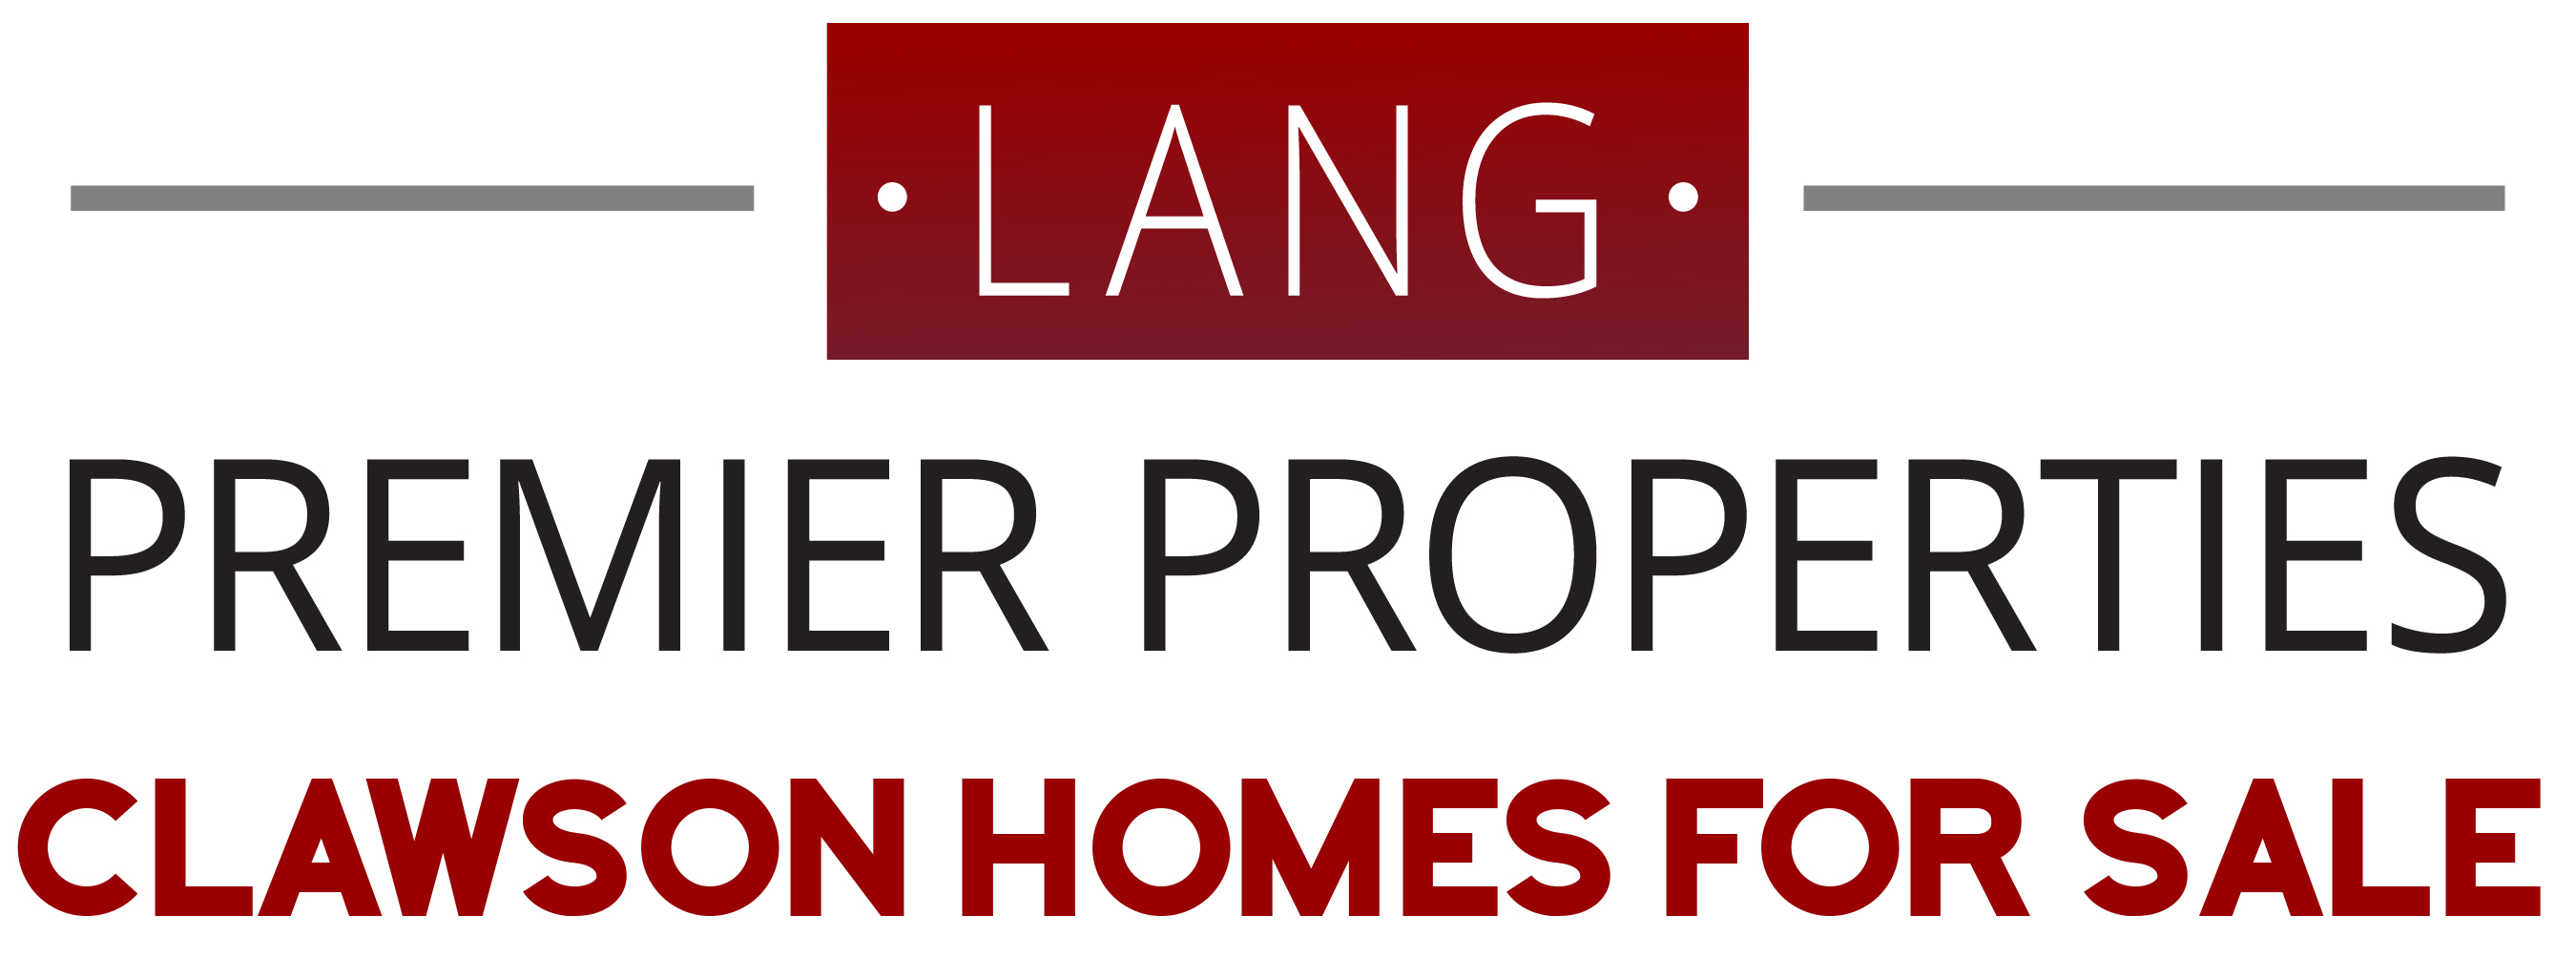 Homes for sale crib point vic - Lang Premier Properties Clawson Homes For Sale